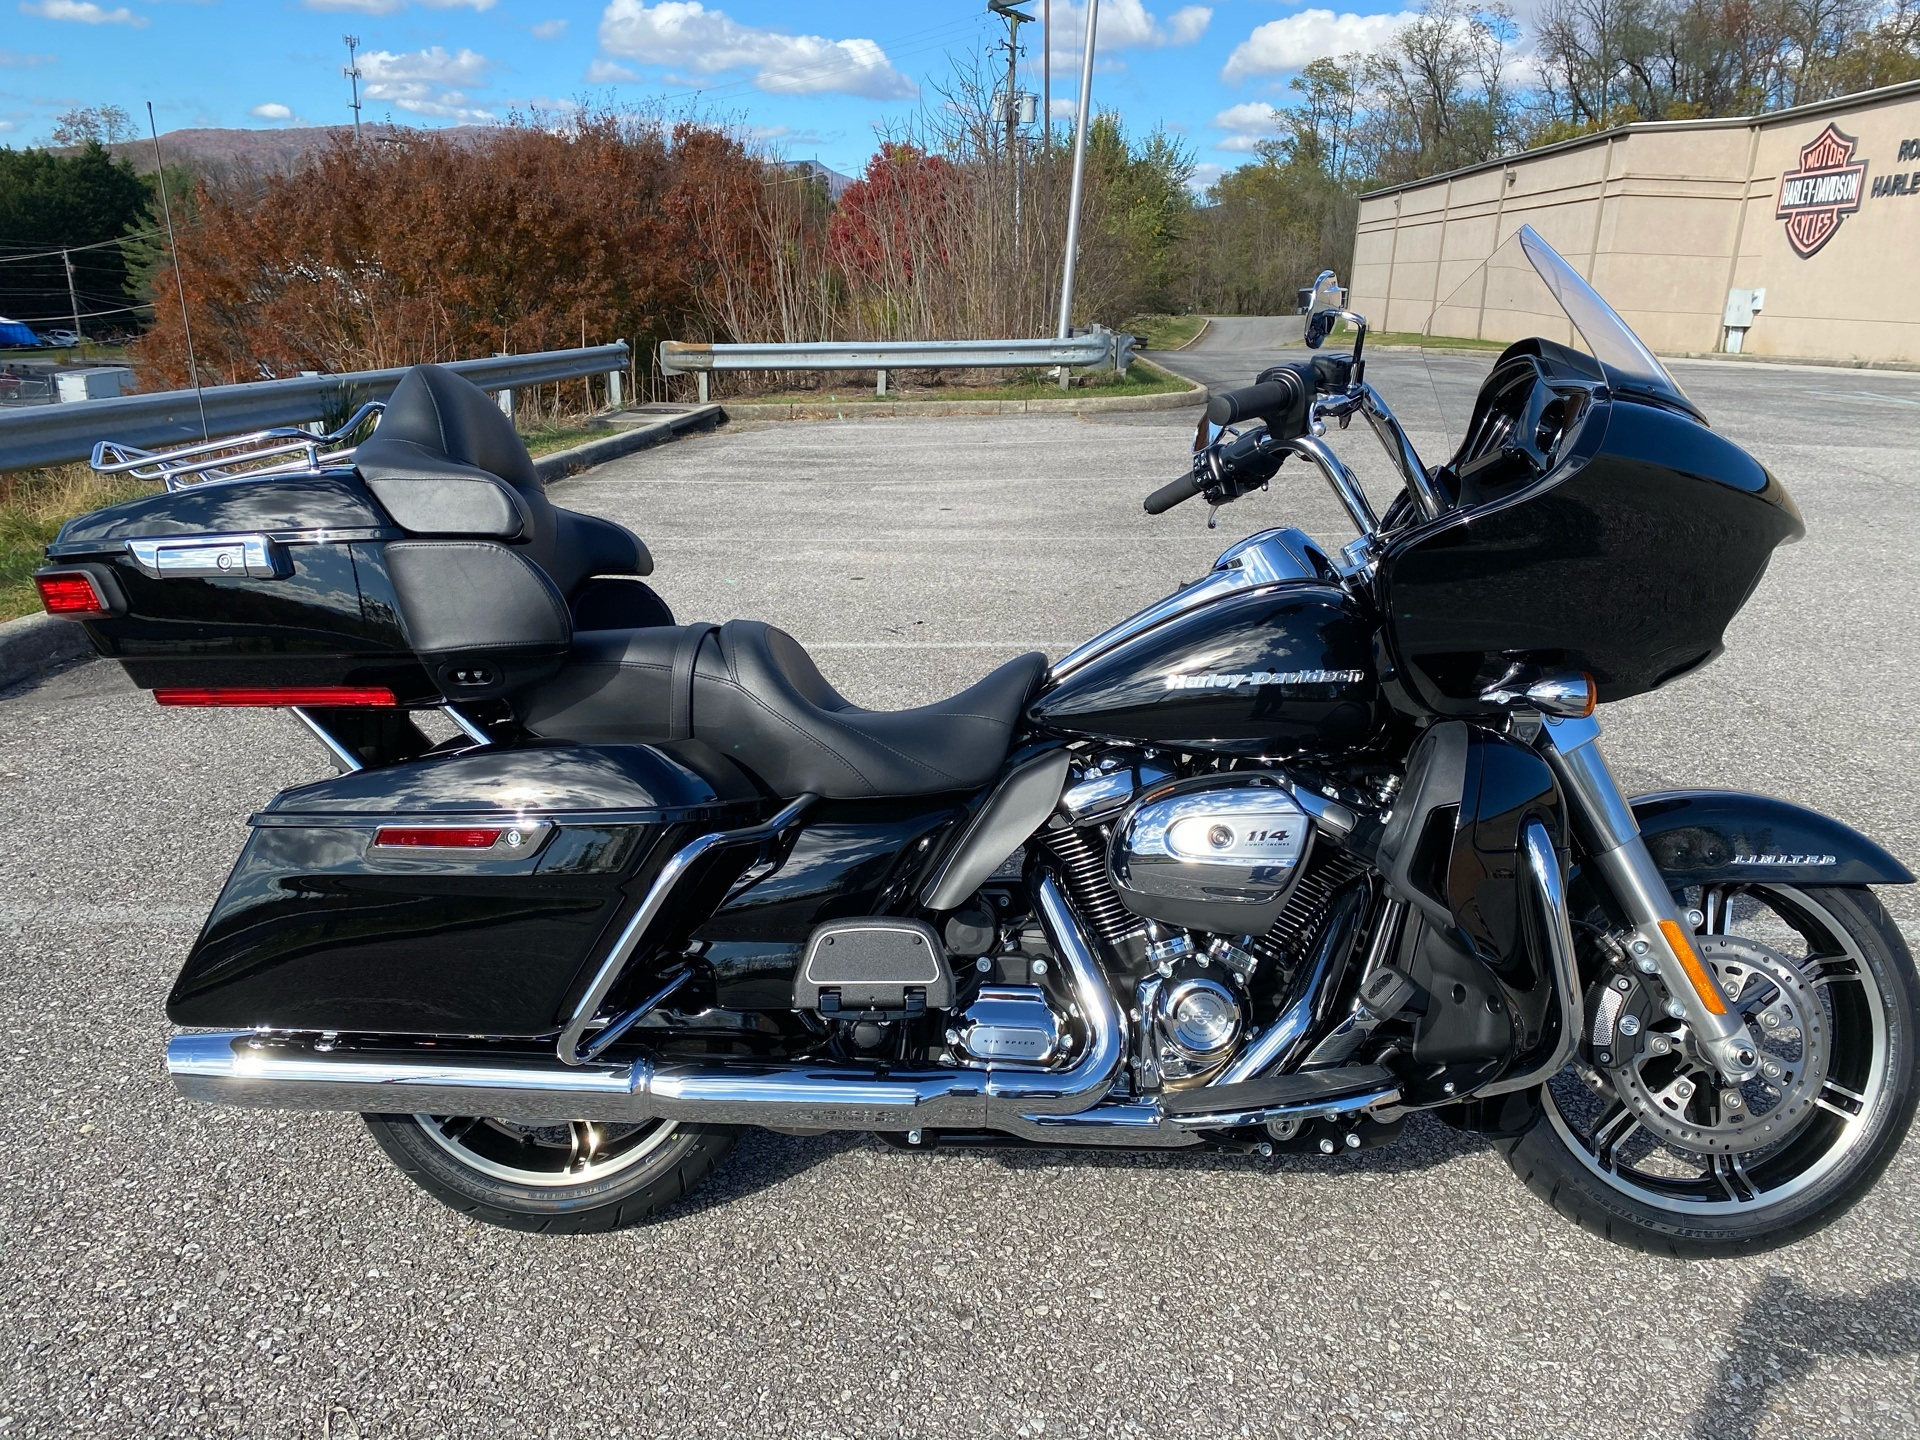 2020 Harley-Davidson Road Glide Limited in Roanoke, Virginia - Photo 1